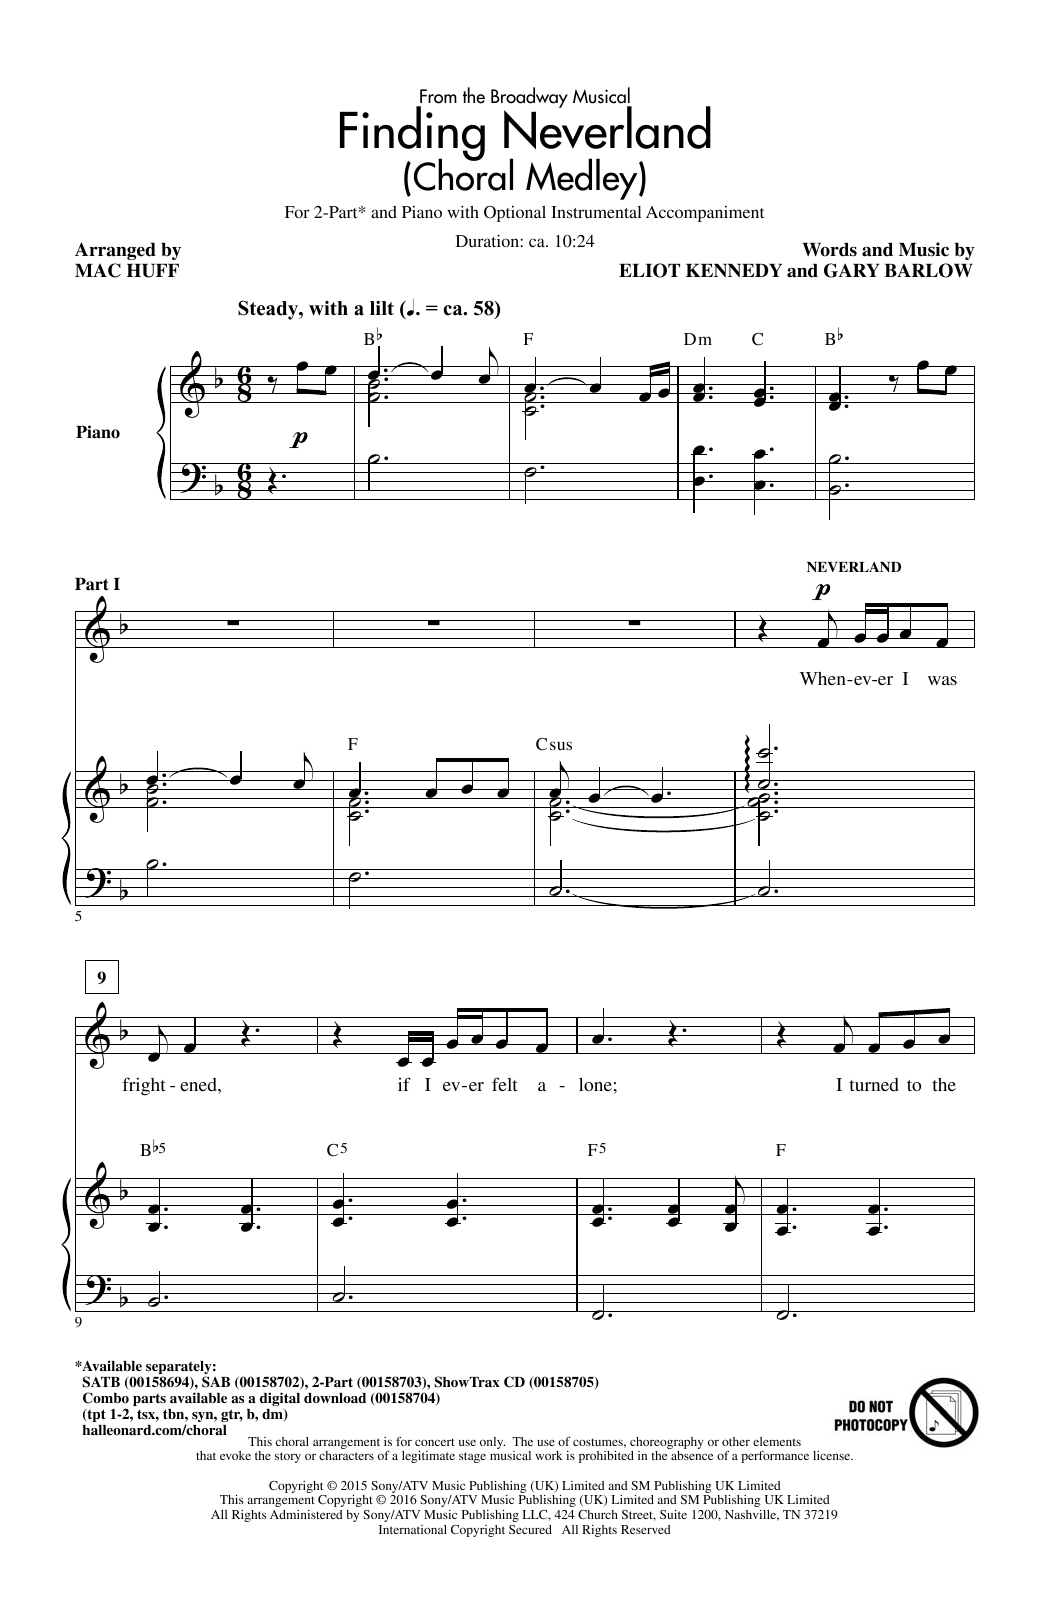 Finding Neverland (Choral Medley) Sheet Music